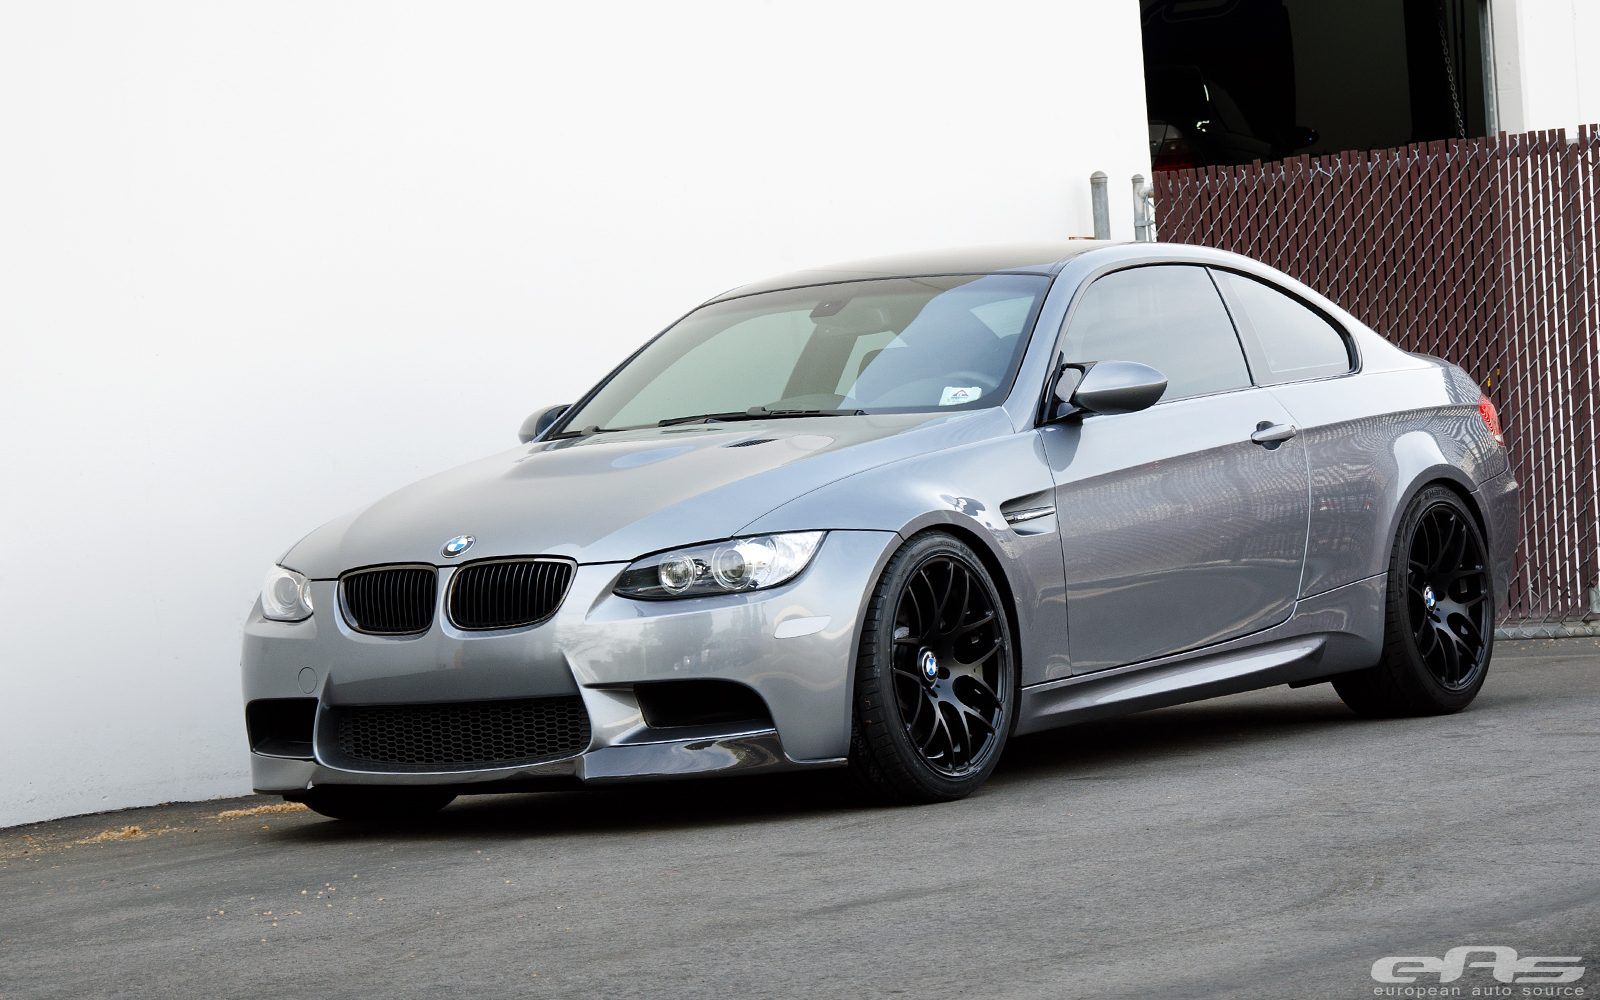 Space Gray M Gets Satin Black V Wheels At Eas Photo Gallery